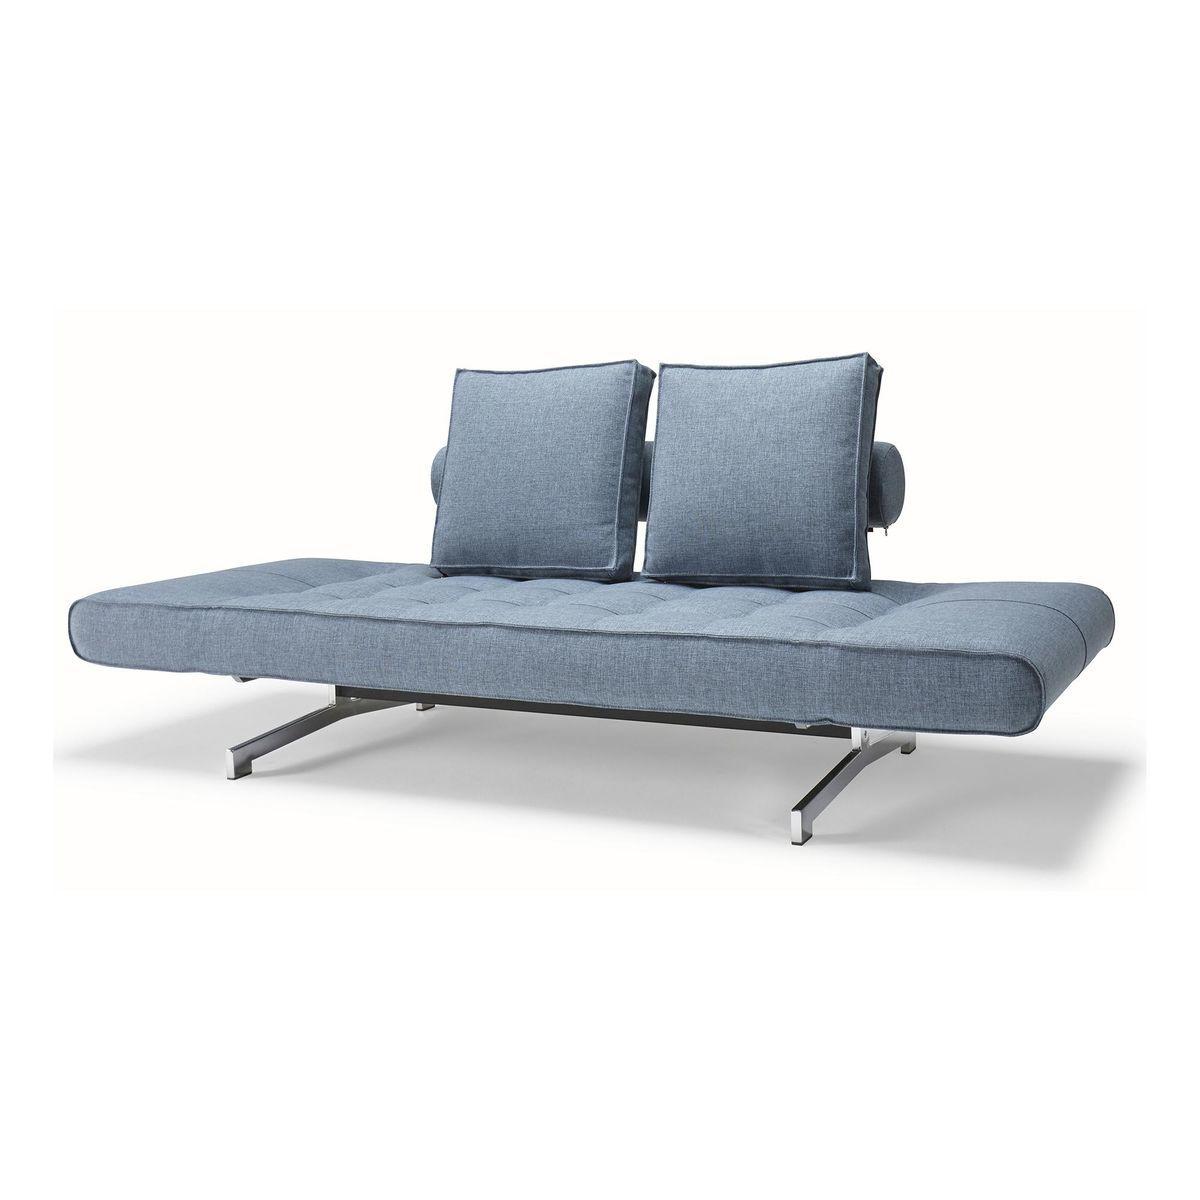 Ghia Sofa Bed | Innovation | AmbienteDirect.com